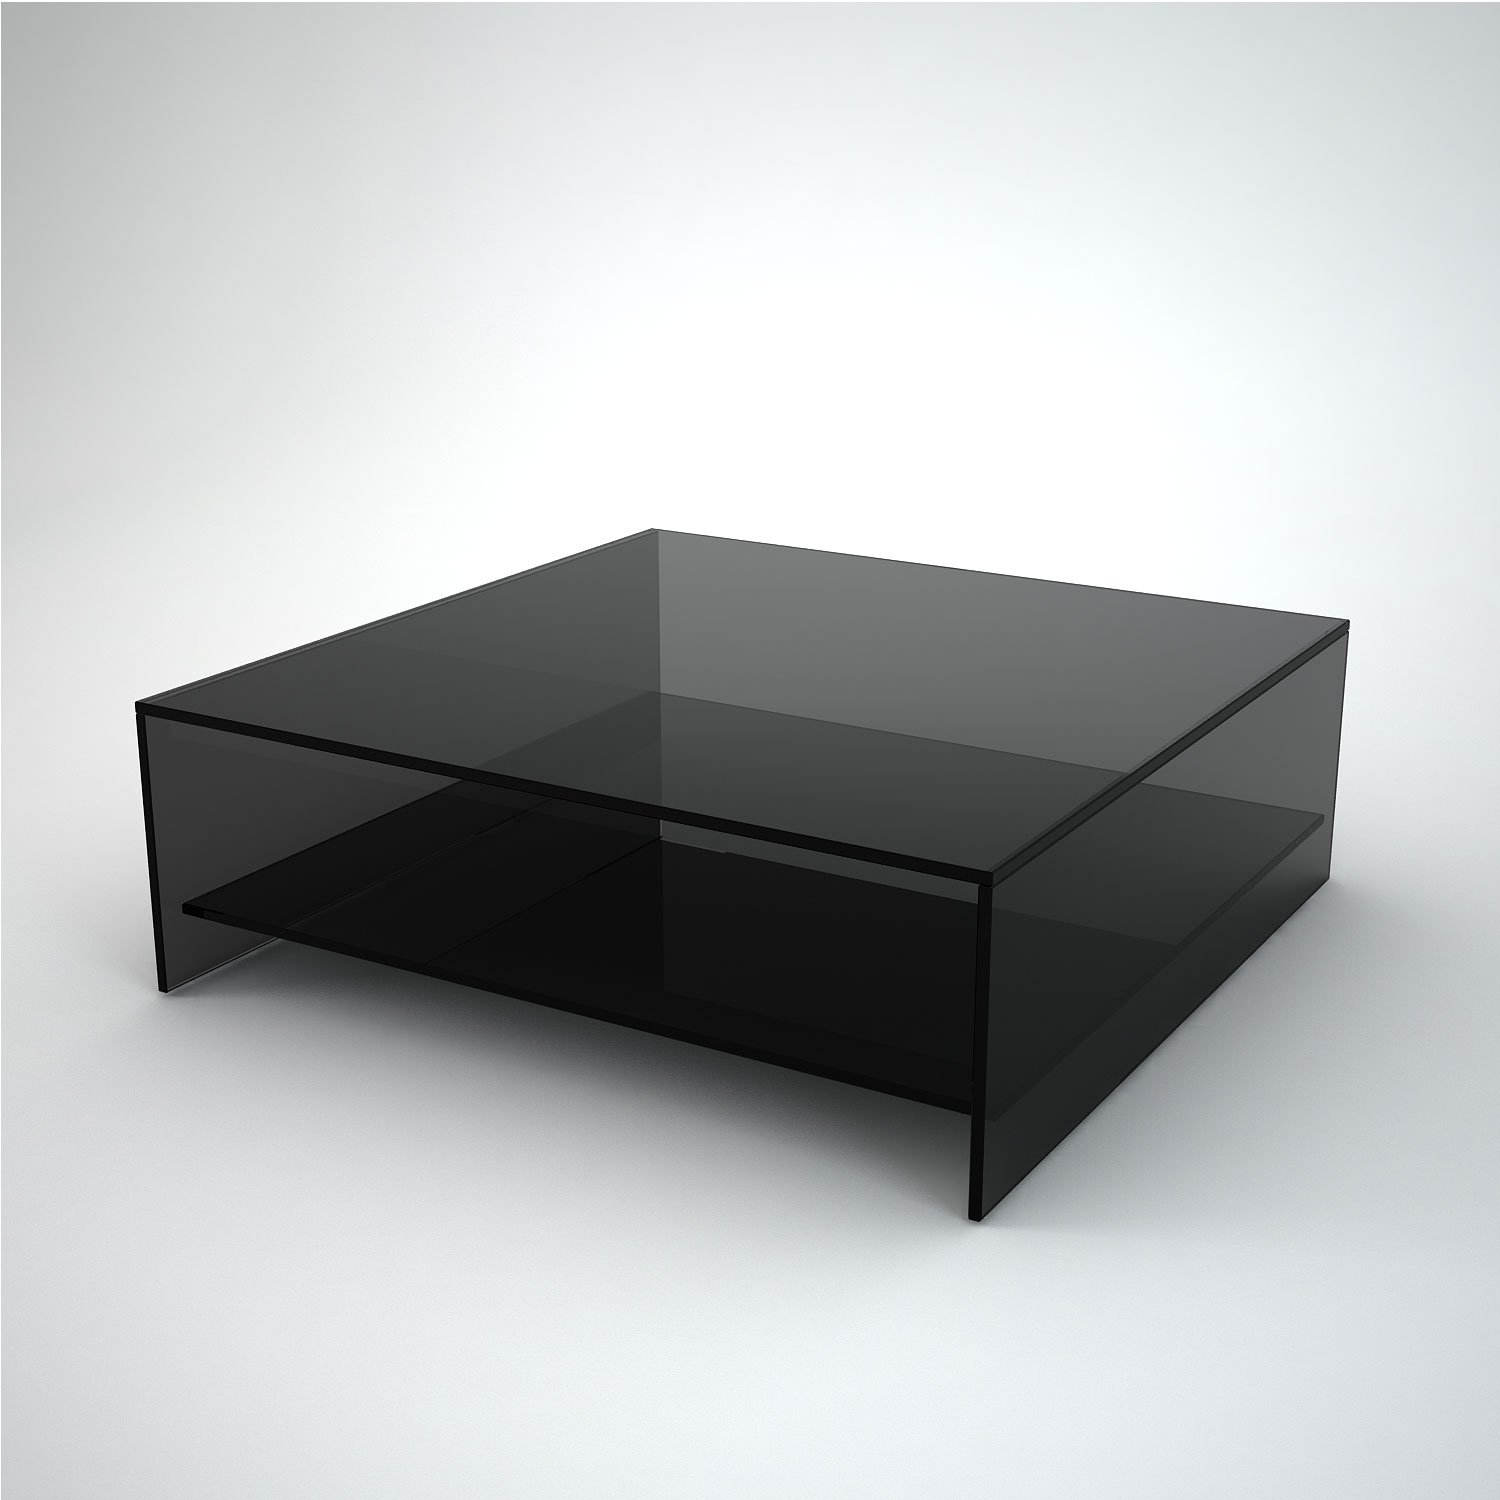 Judd Square Smoked Glass Coffee Table with Shelf Klarity